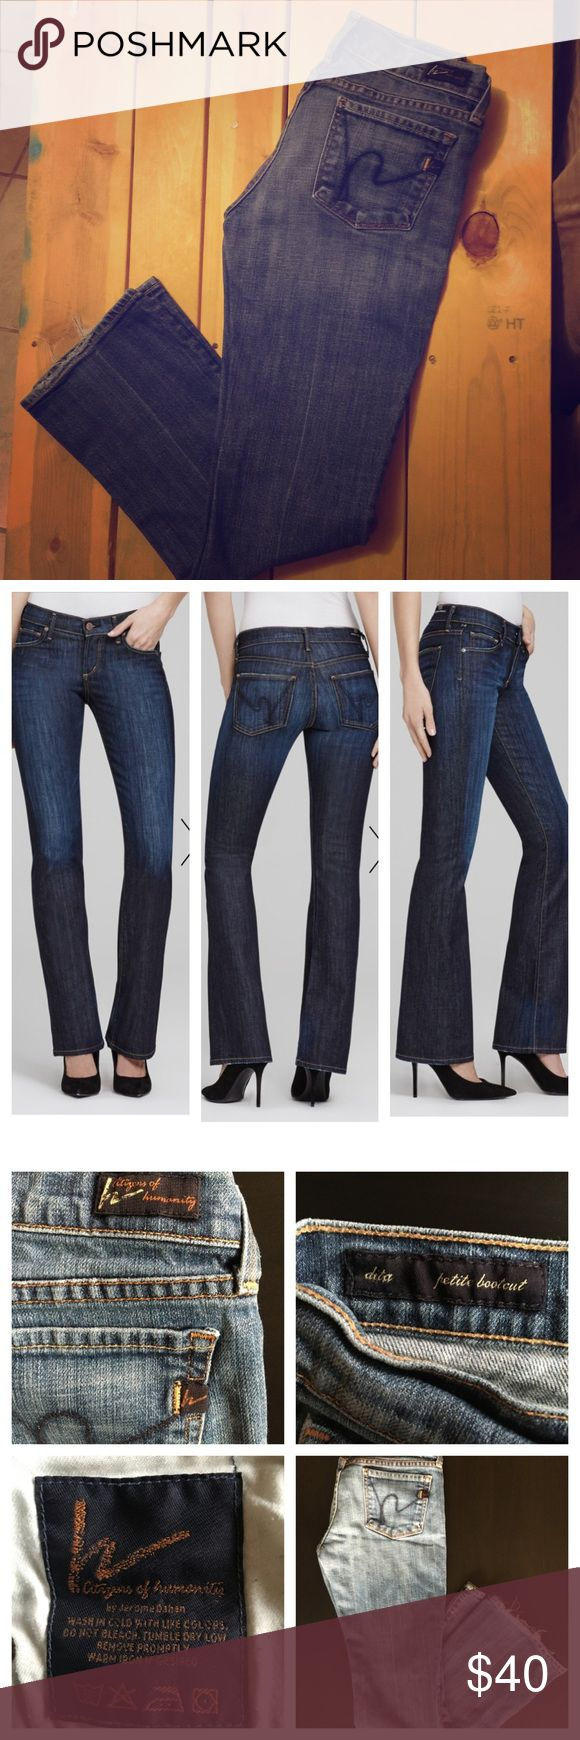 💥SALE 💥Citizens of Humanity Dita Petite Jeans Citizens of Humanity: With over 25 years of experience in the denim industry, founder Jerome Dahan, is a true visionary and the first to bring the concept of luxury designer denim to the global marketplace. Comfortable, durable denim, you can't go wrong with these world class jeans! Citizens of Humanity Jeans